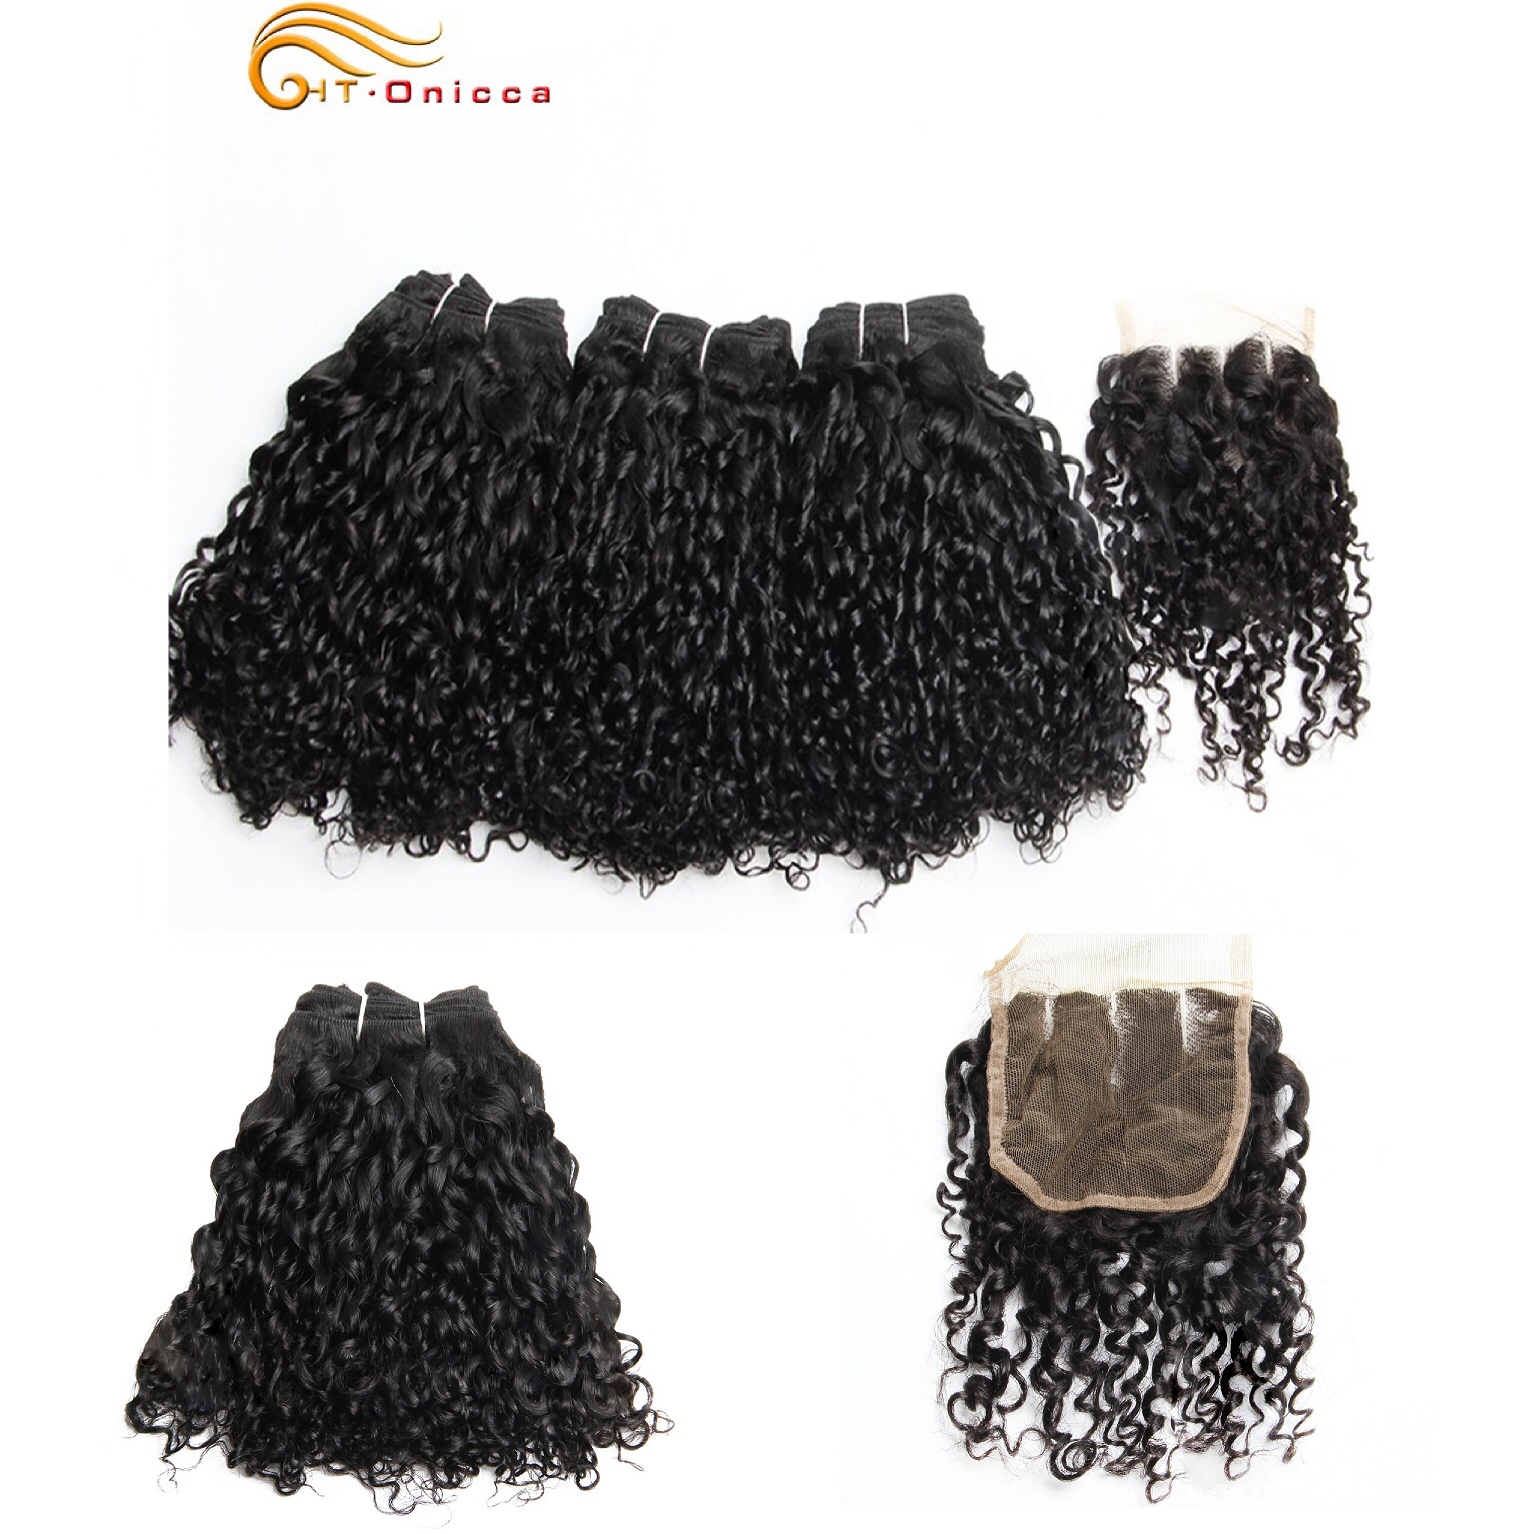 Pissy/Pixie Curls With Closure Jerry Curl Bundles 6Pcs With Closure In 12/14/16/18 Inch Double Drawn Brazilian Human Remy Hair